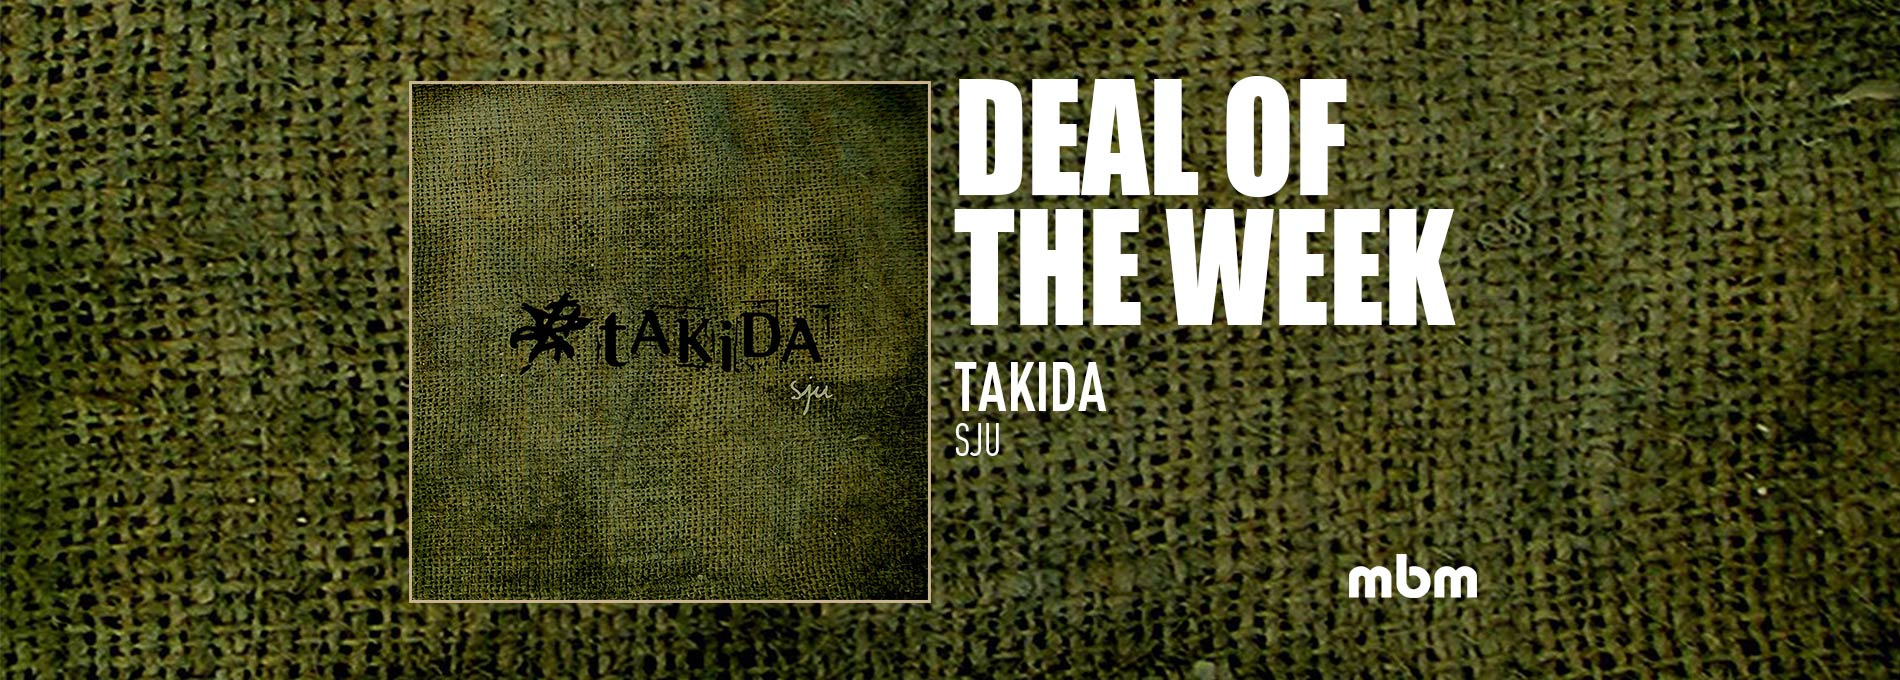 Deal Of The Week: TAKIDA - Sju